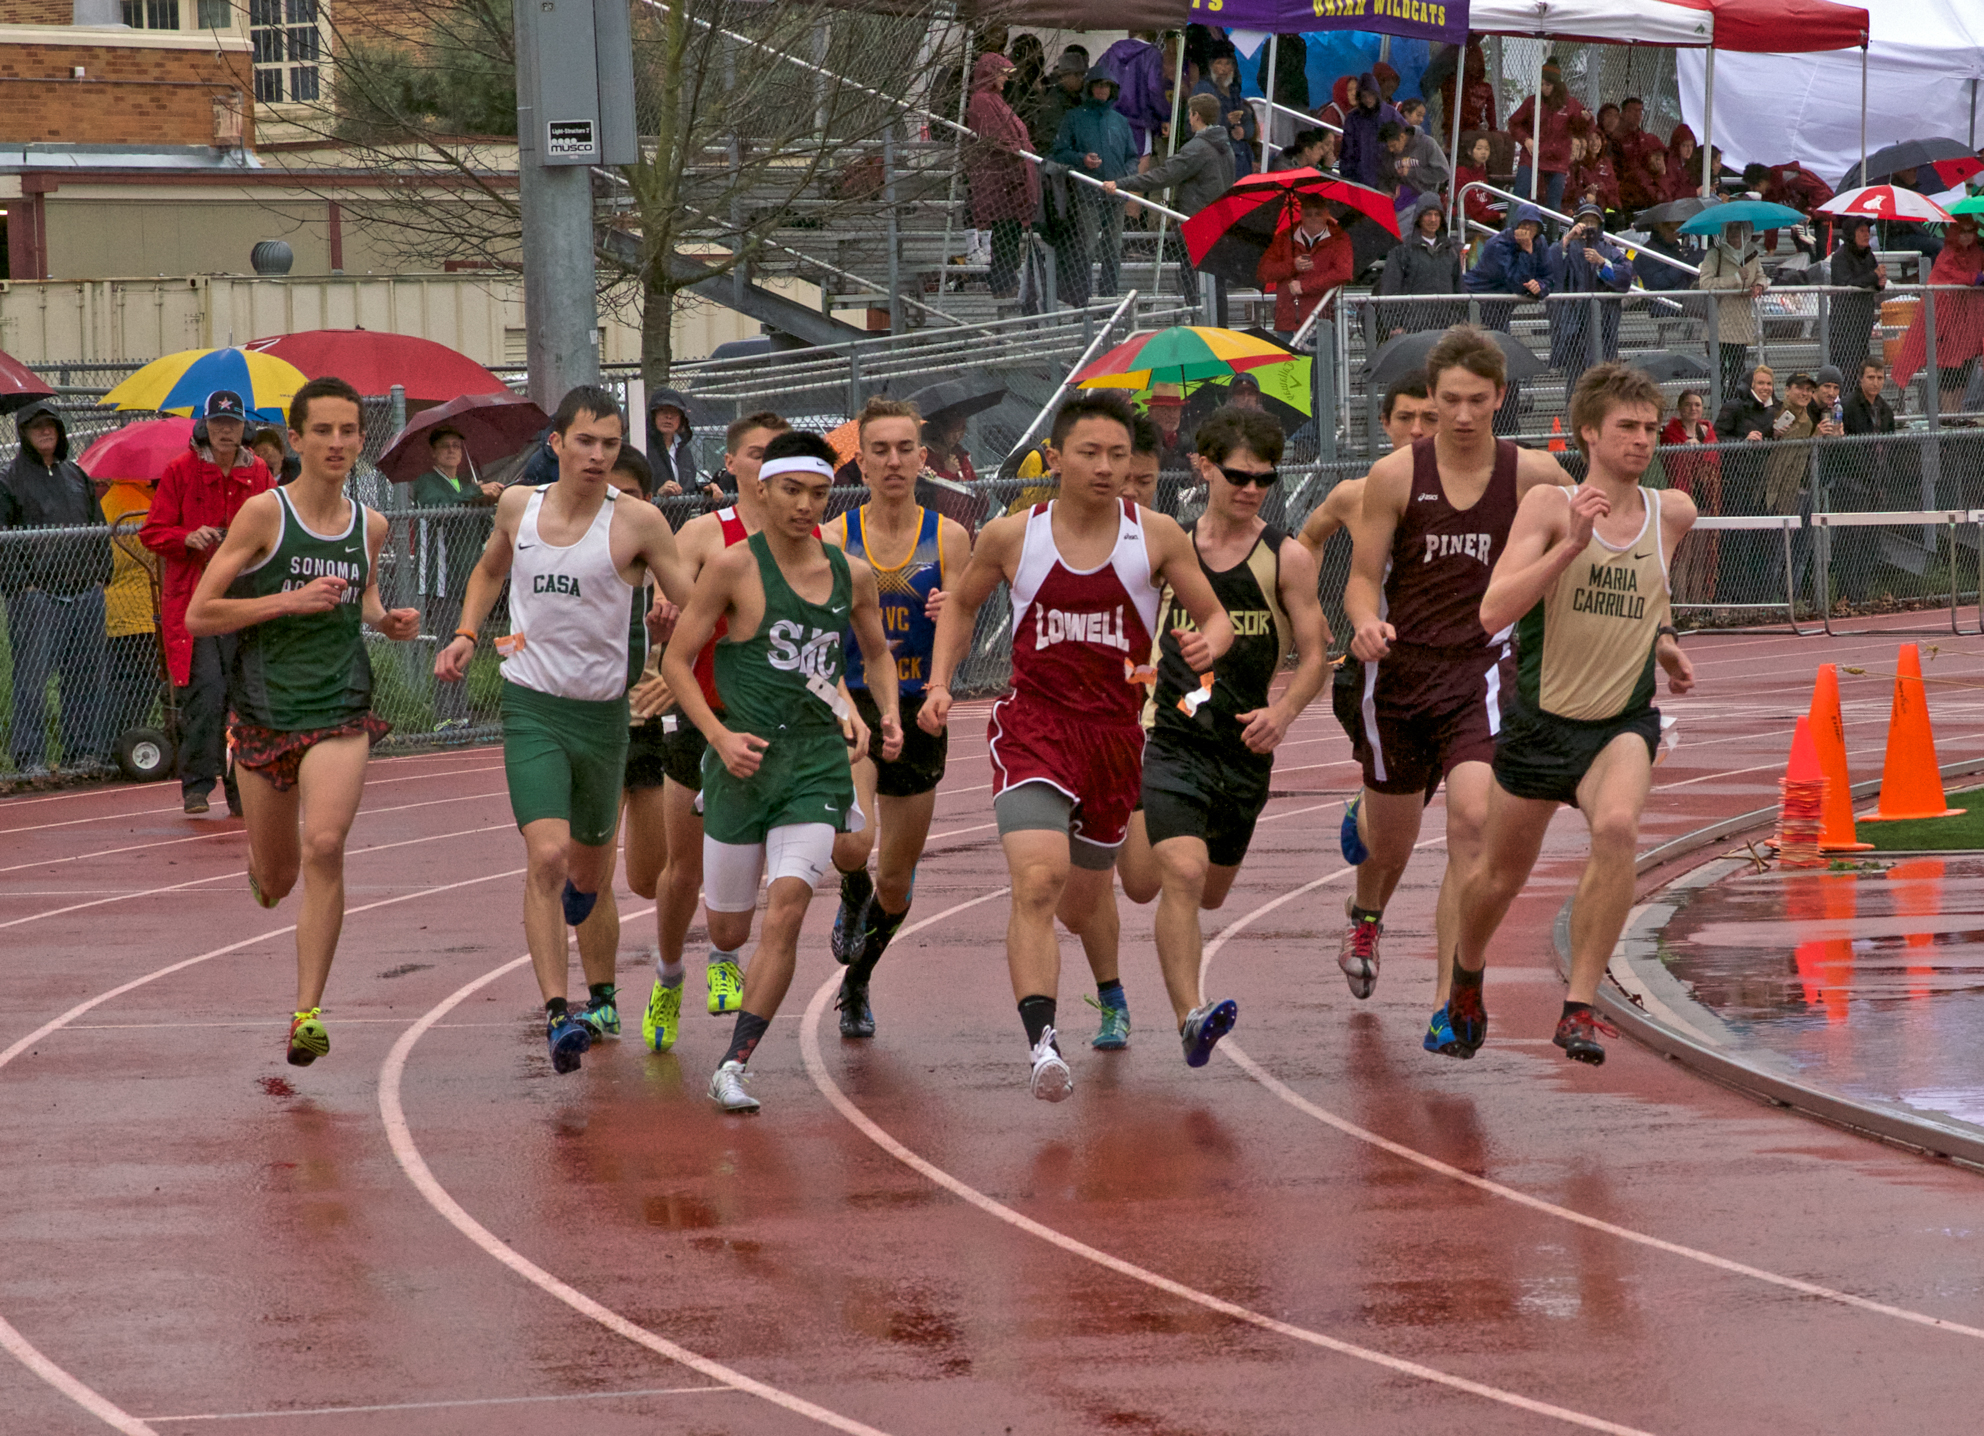 Start of Varsity Boys 800m final heat